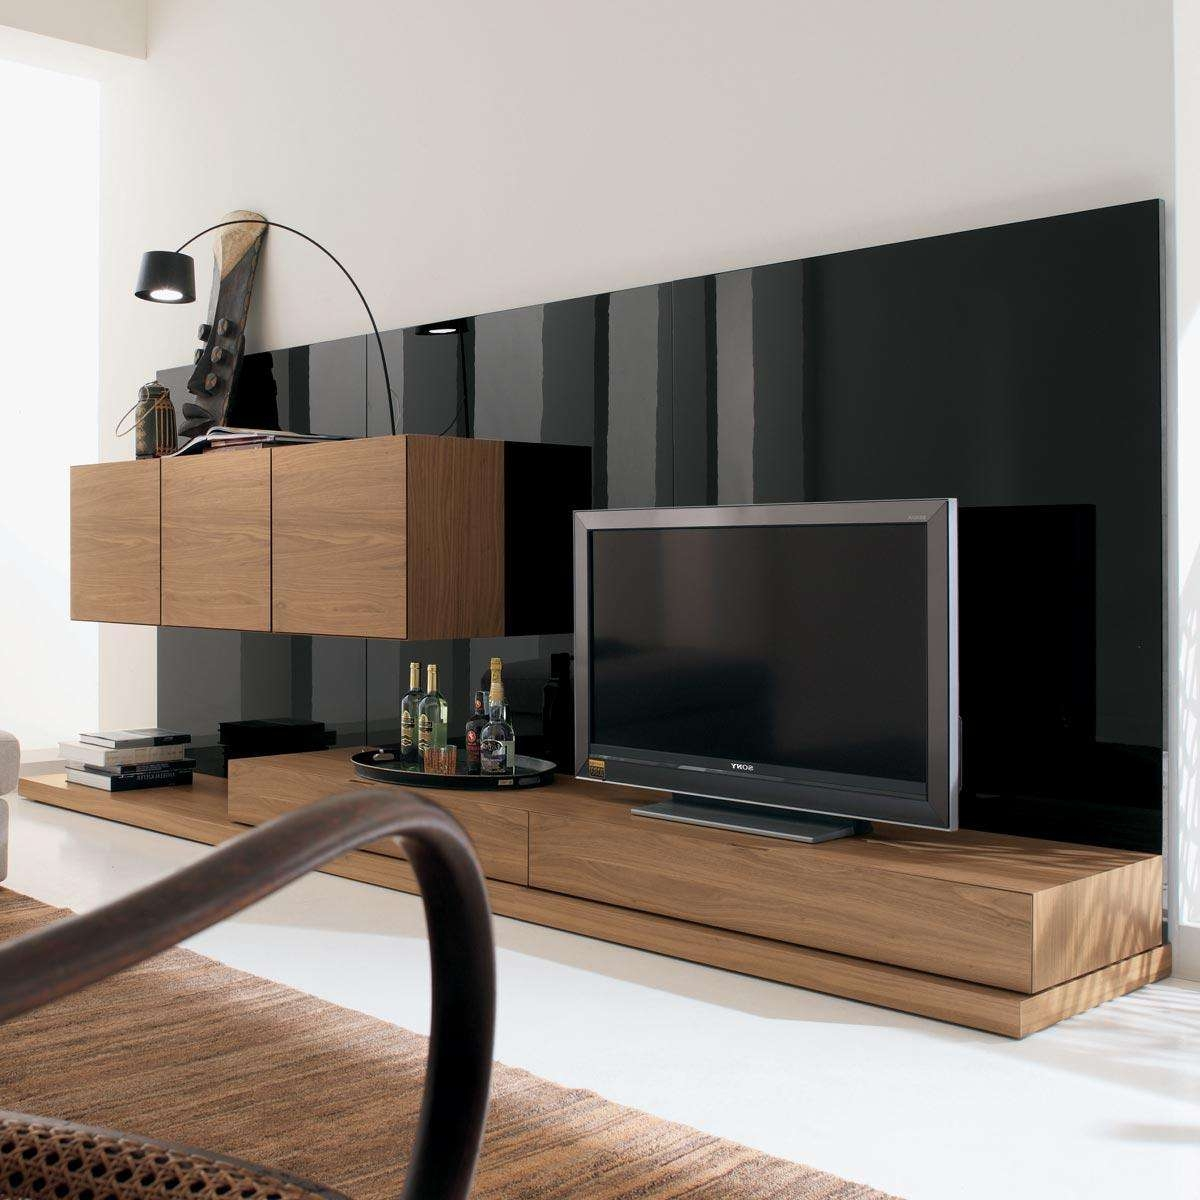 Modern Nature Wood Big Screen Tv Stand Wall Mounted Living Room Inside Modern Tv Stands With Mount (View 9 of 15)